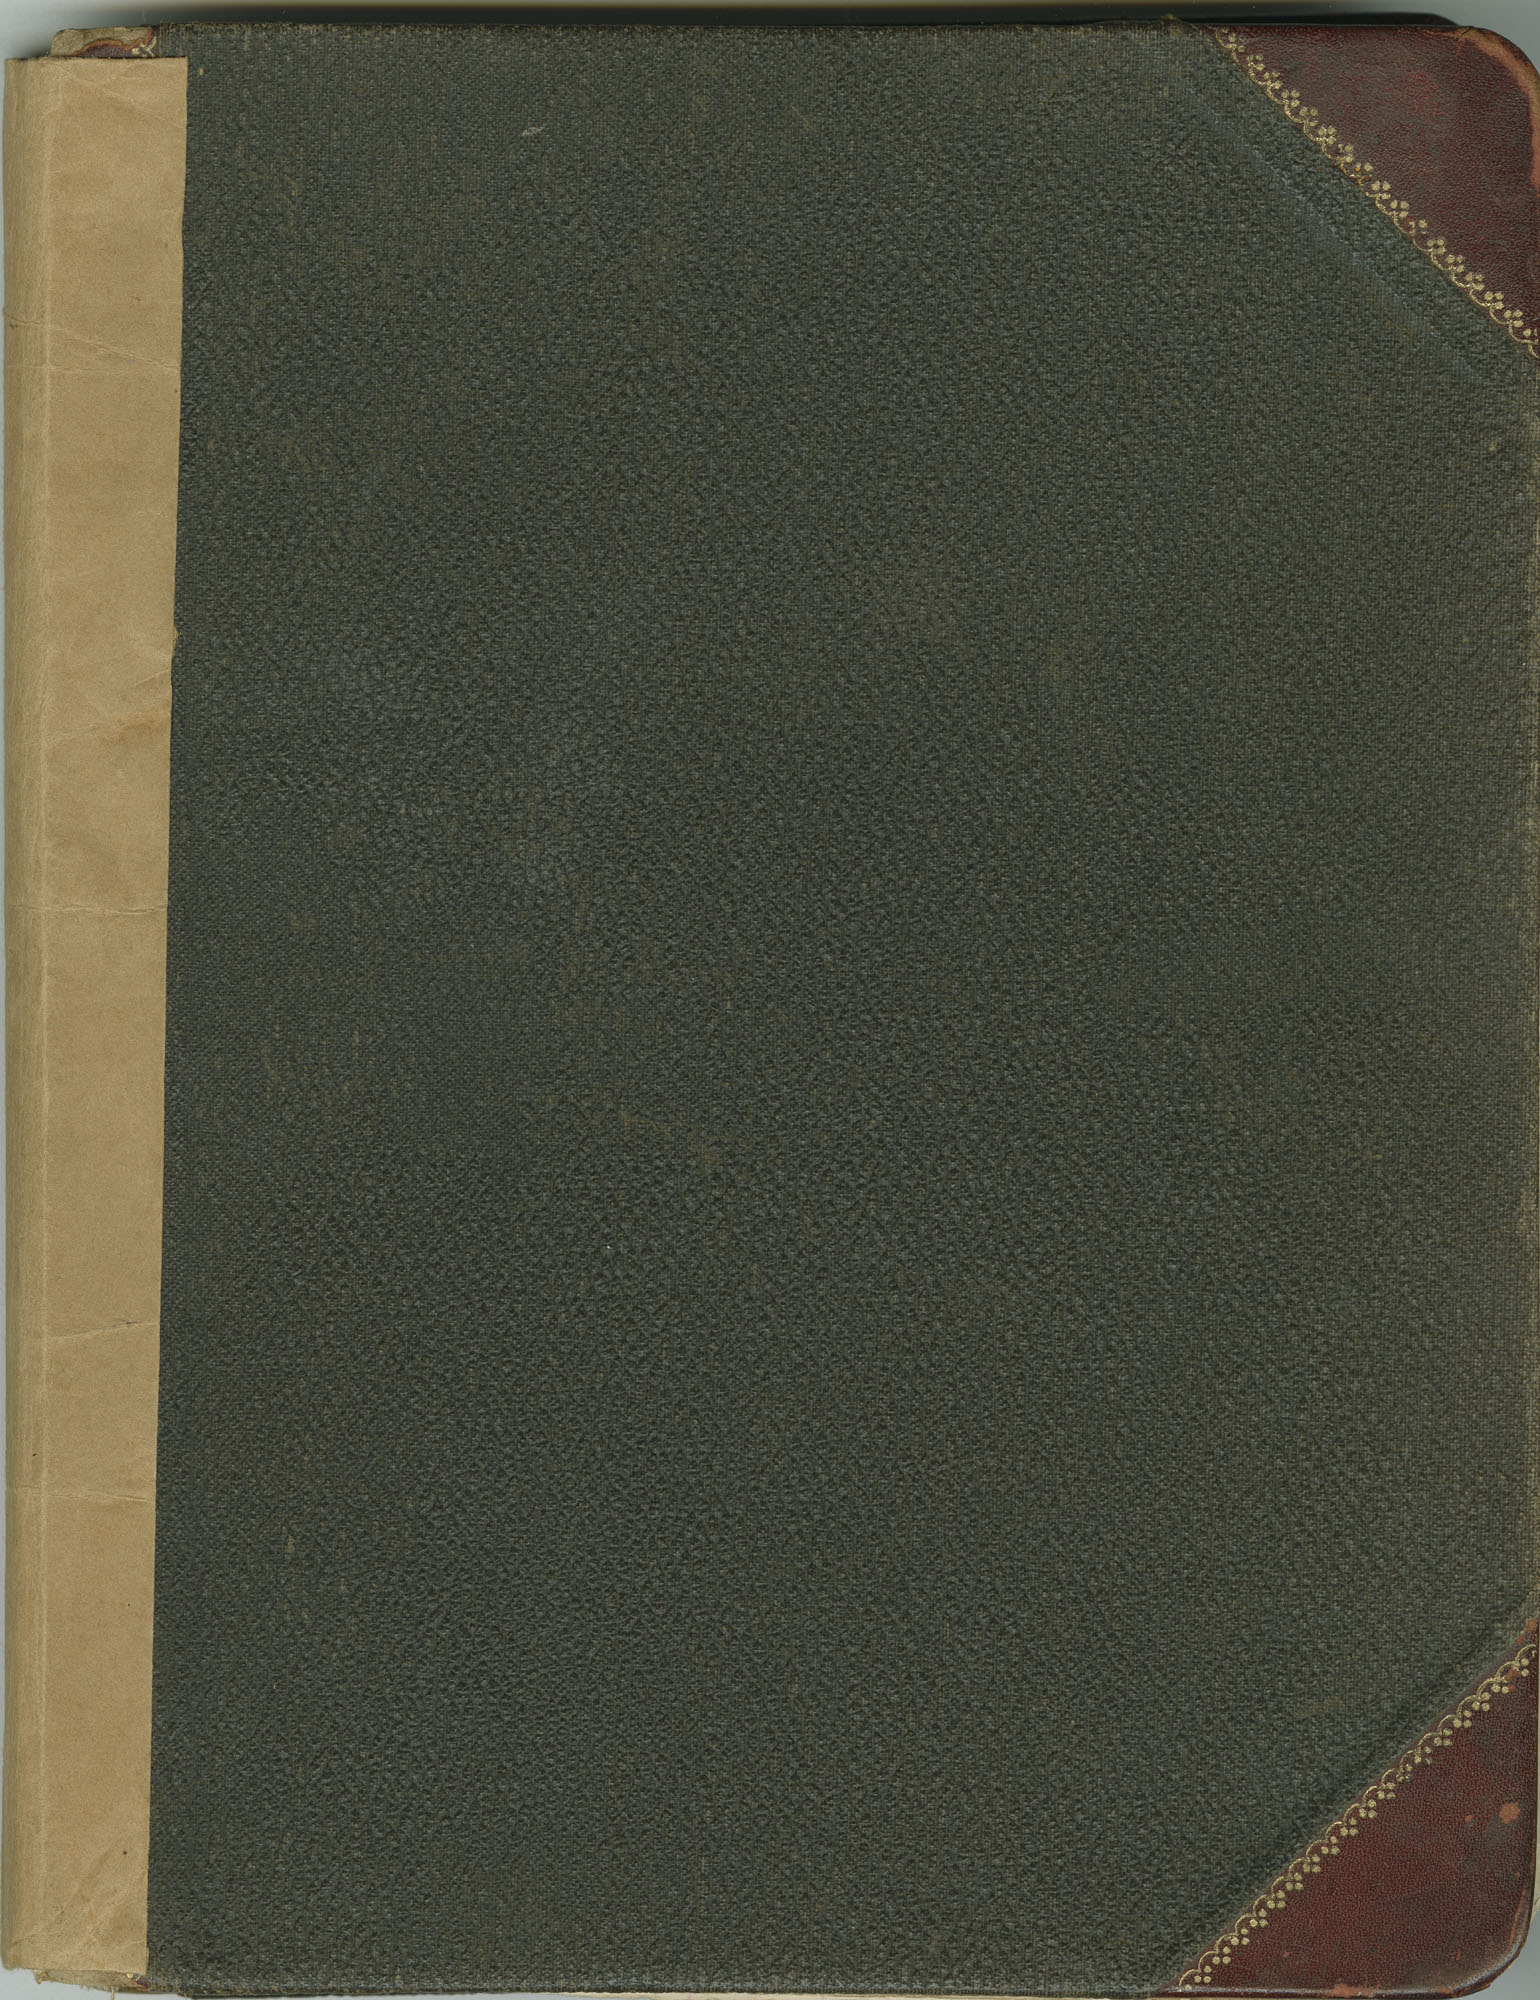 1. Front Cover of Daughters of Century Society and Brown Fellowship Society Arrear Book and Minutes, 1904-1975.